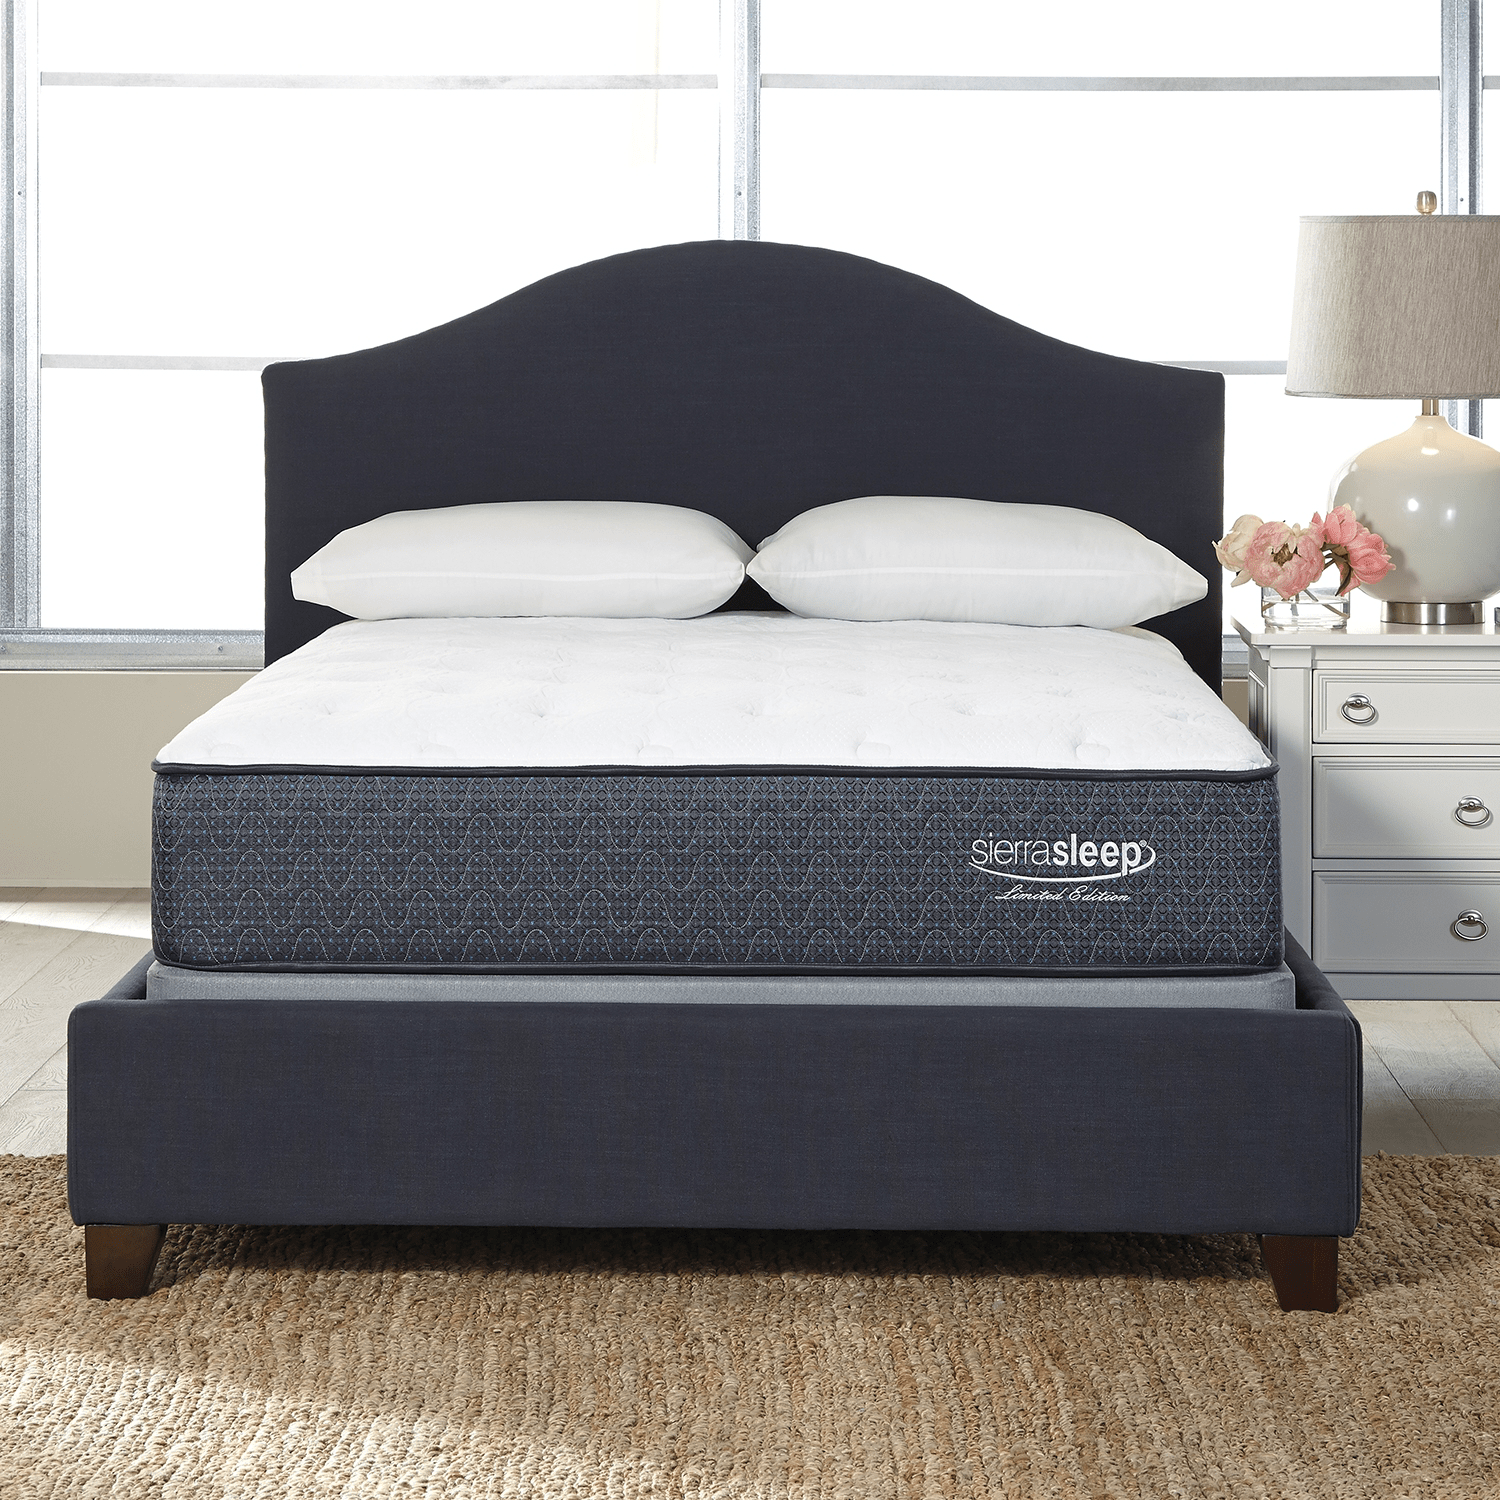 When To Buy A New Mattress How To Buy A Mattress Style By Jcpenney